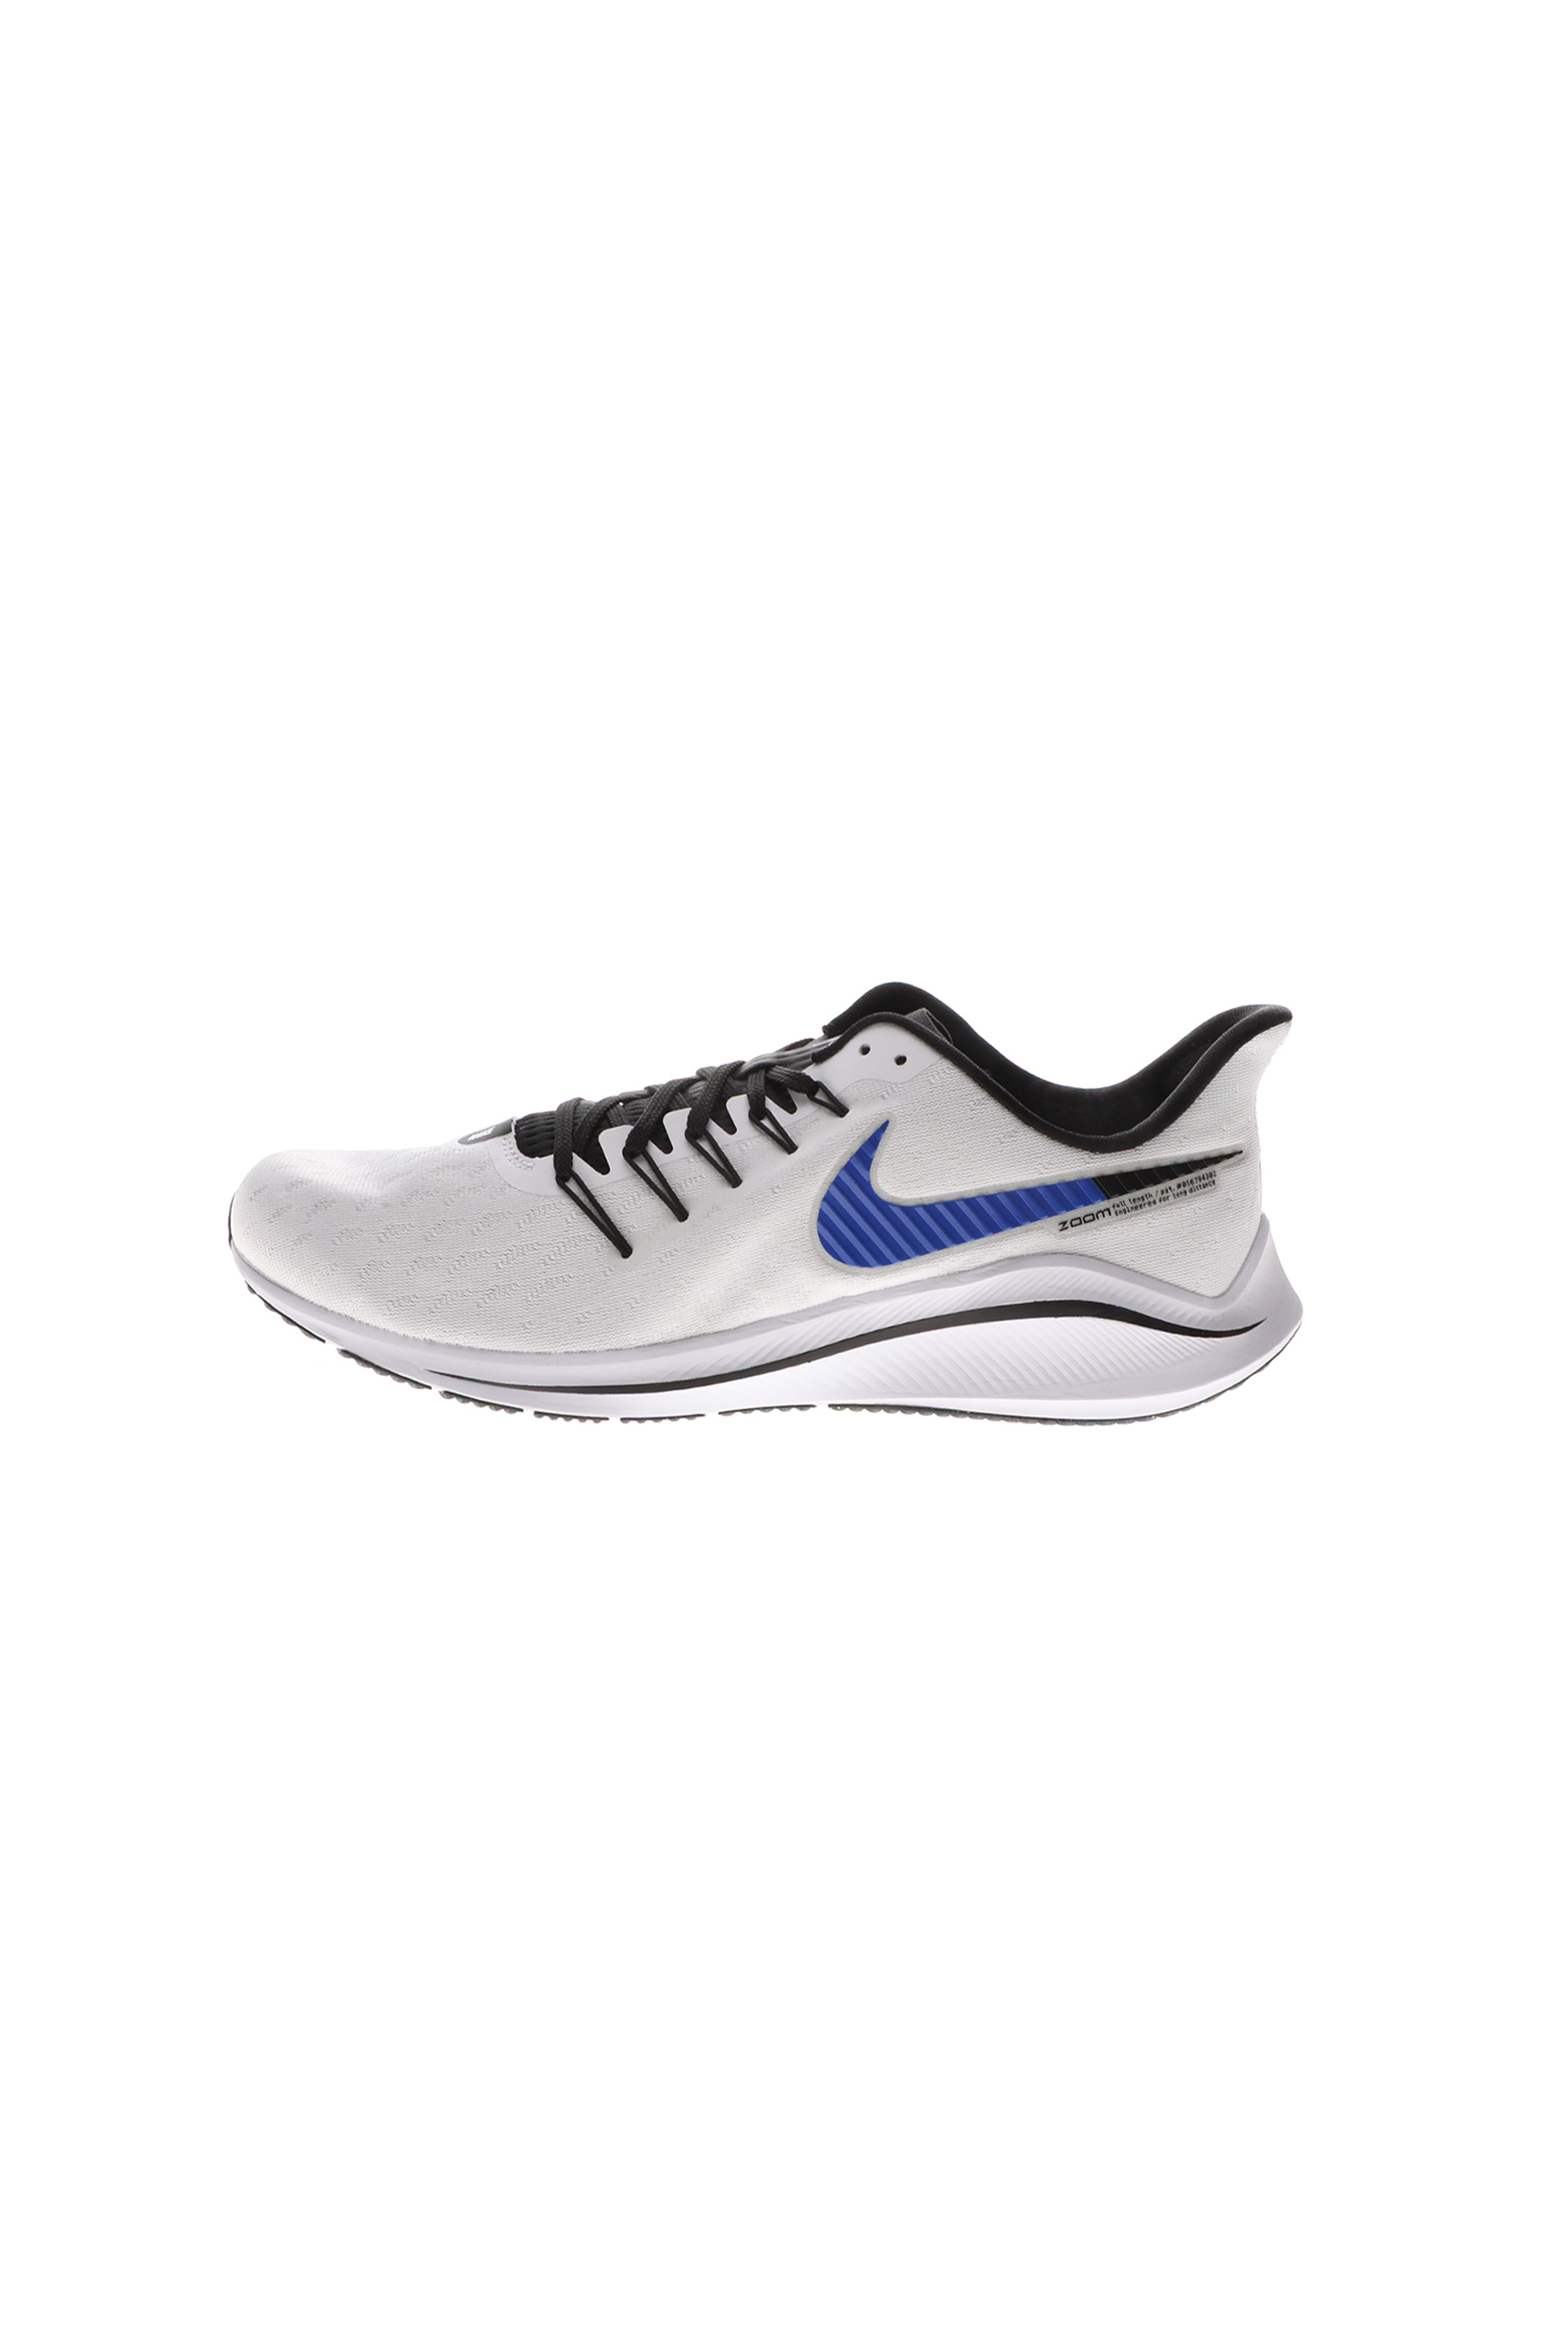 NIKE – Ανδρικά παπούτσια running NIKE AIR ZOOM VOMERO 14 λευκά μπλε